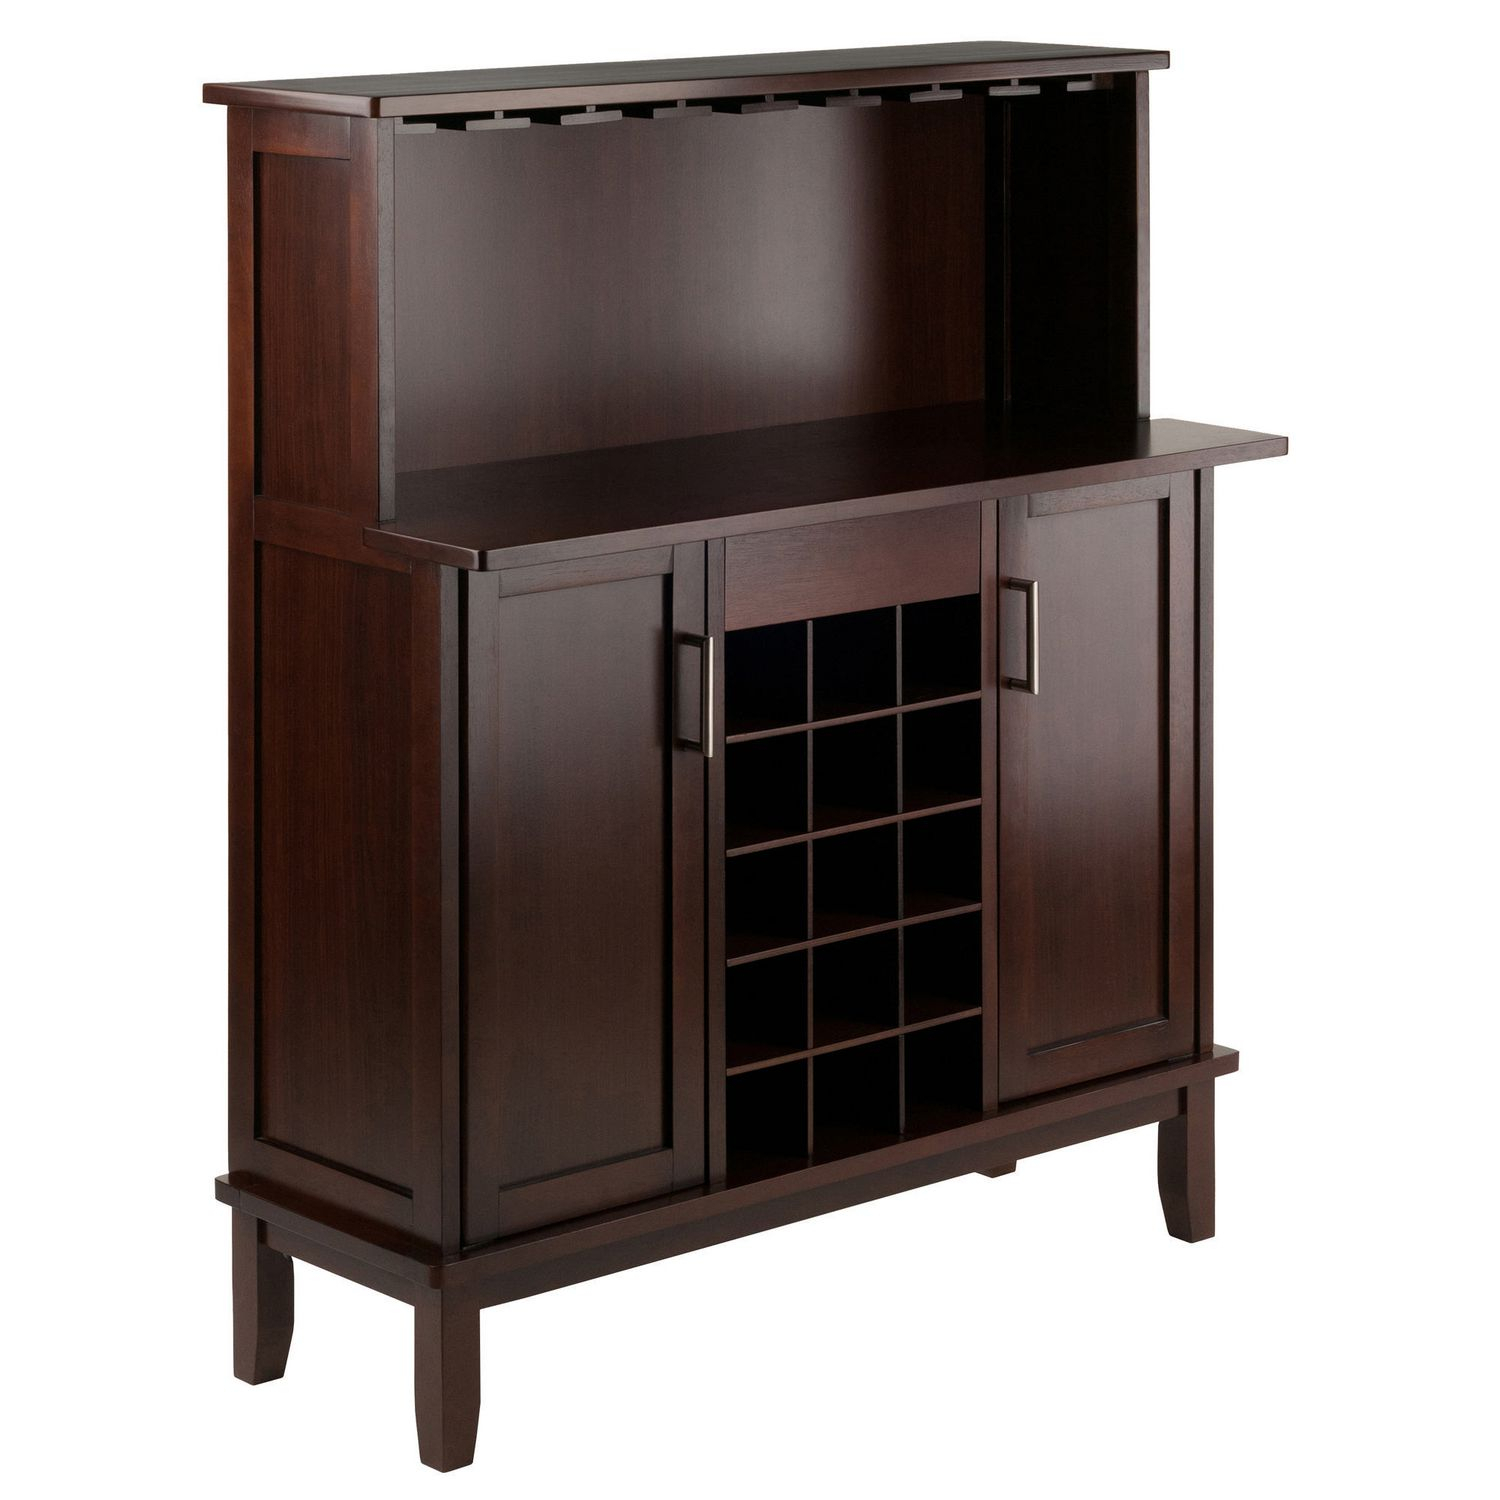 Winsome Beynac Buffet Cabinet With Bar Counter Top in Solid And Composite Wood Buffets In Cappuccino Finish (Image 24 of 30)